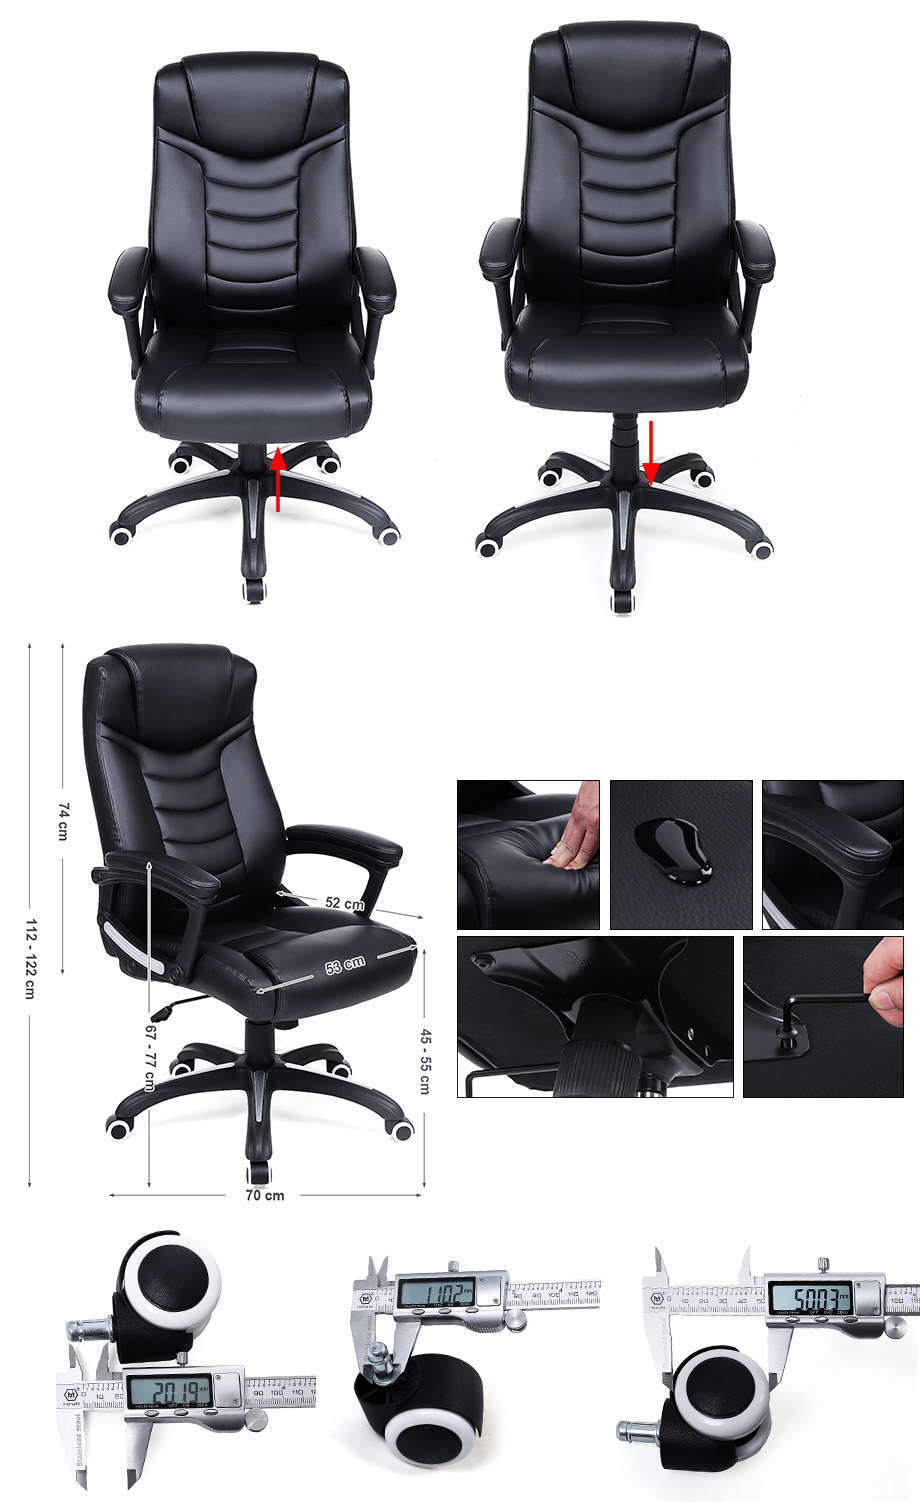 songmics chaise fauteuil si ge de bureau chaise pour ordinateur pu noir obg21b ebay. Black Bedroom Furniture Sets. Home Design Ideas